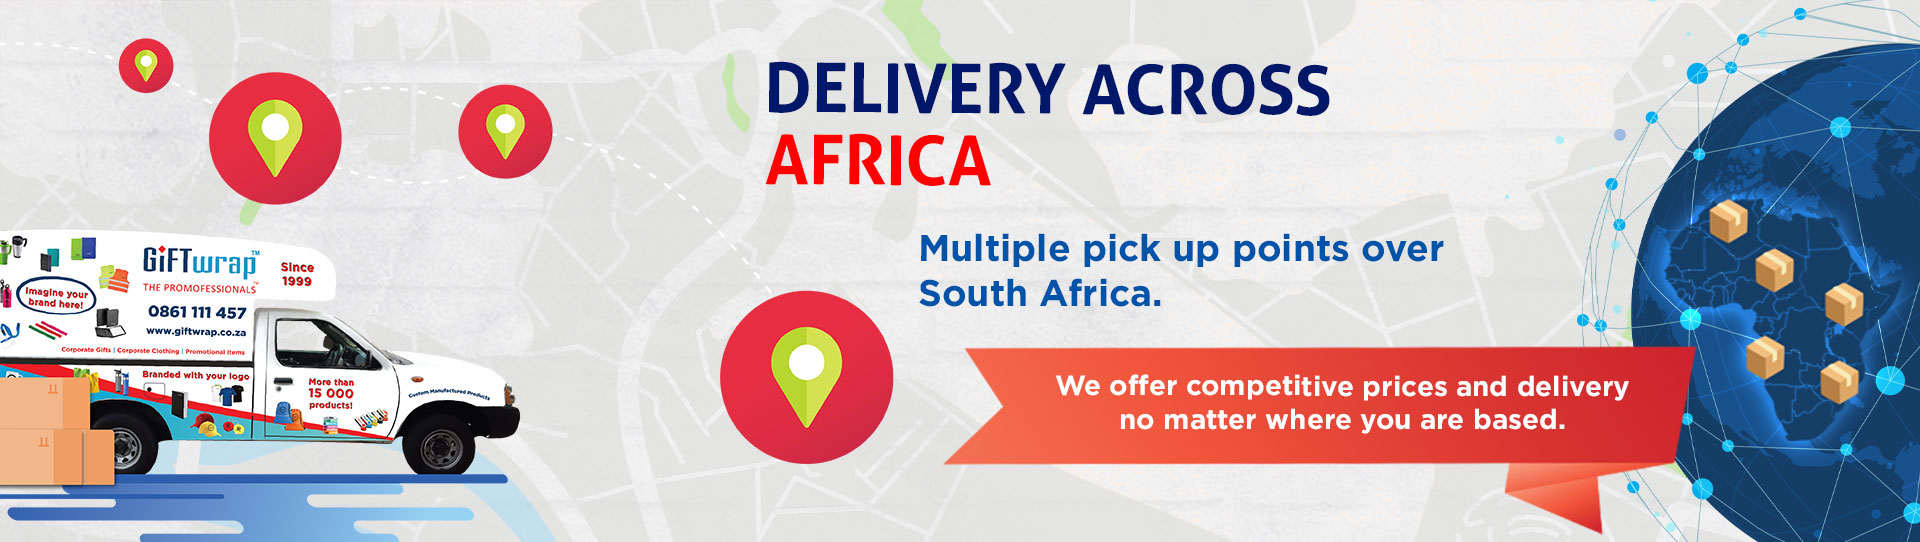 Delivery across Africa